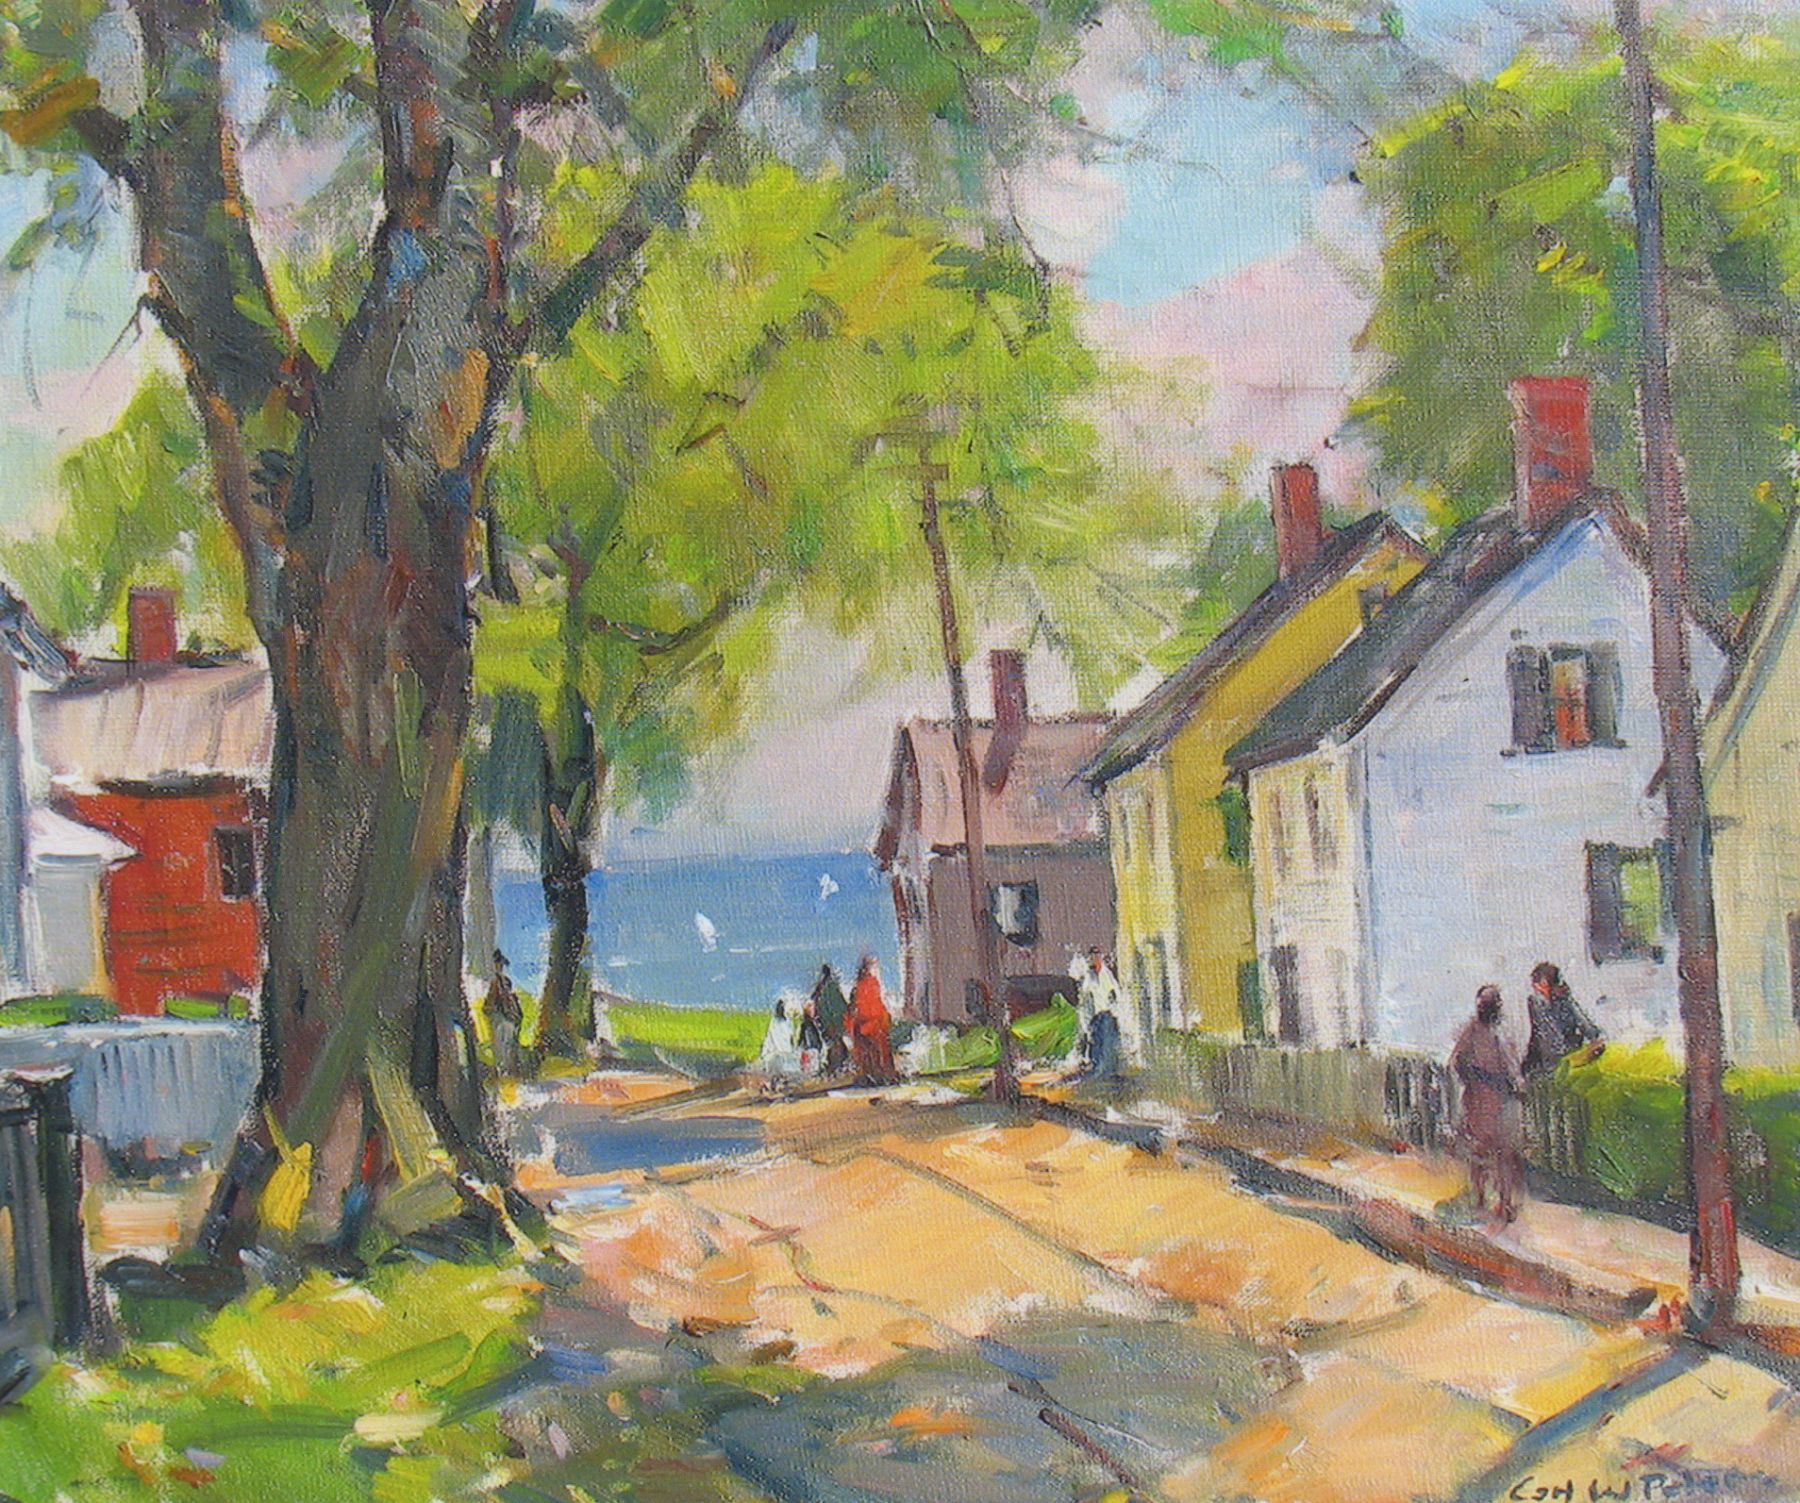 Carl Peters, New England Village